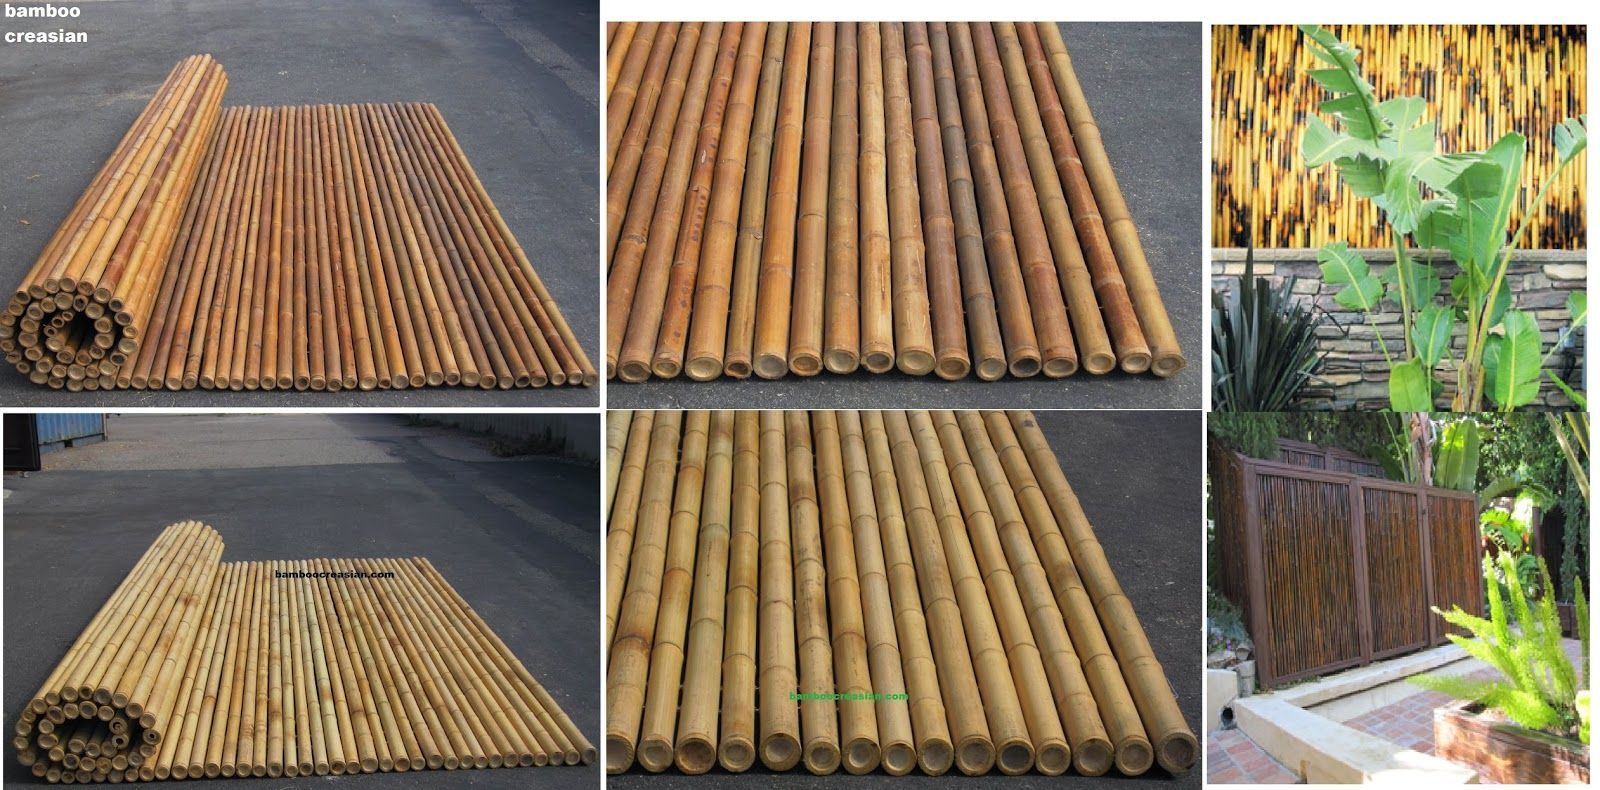 Bamboo Cane Fencing Natural Color 1 And 1 2 Inch Diameter Deals Bamboo Backyards And Patio Fence Panel Rolls Building Natural Fence Easily By Rolled Bamboo Fenc Bamboo Fence Bamboo Bar Bamboo Decking